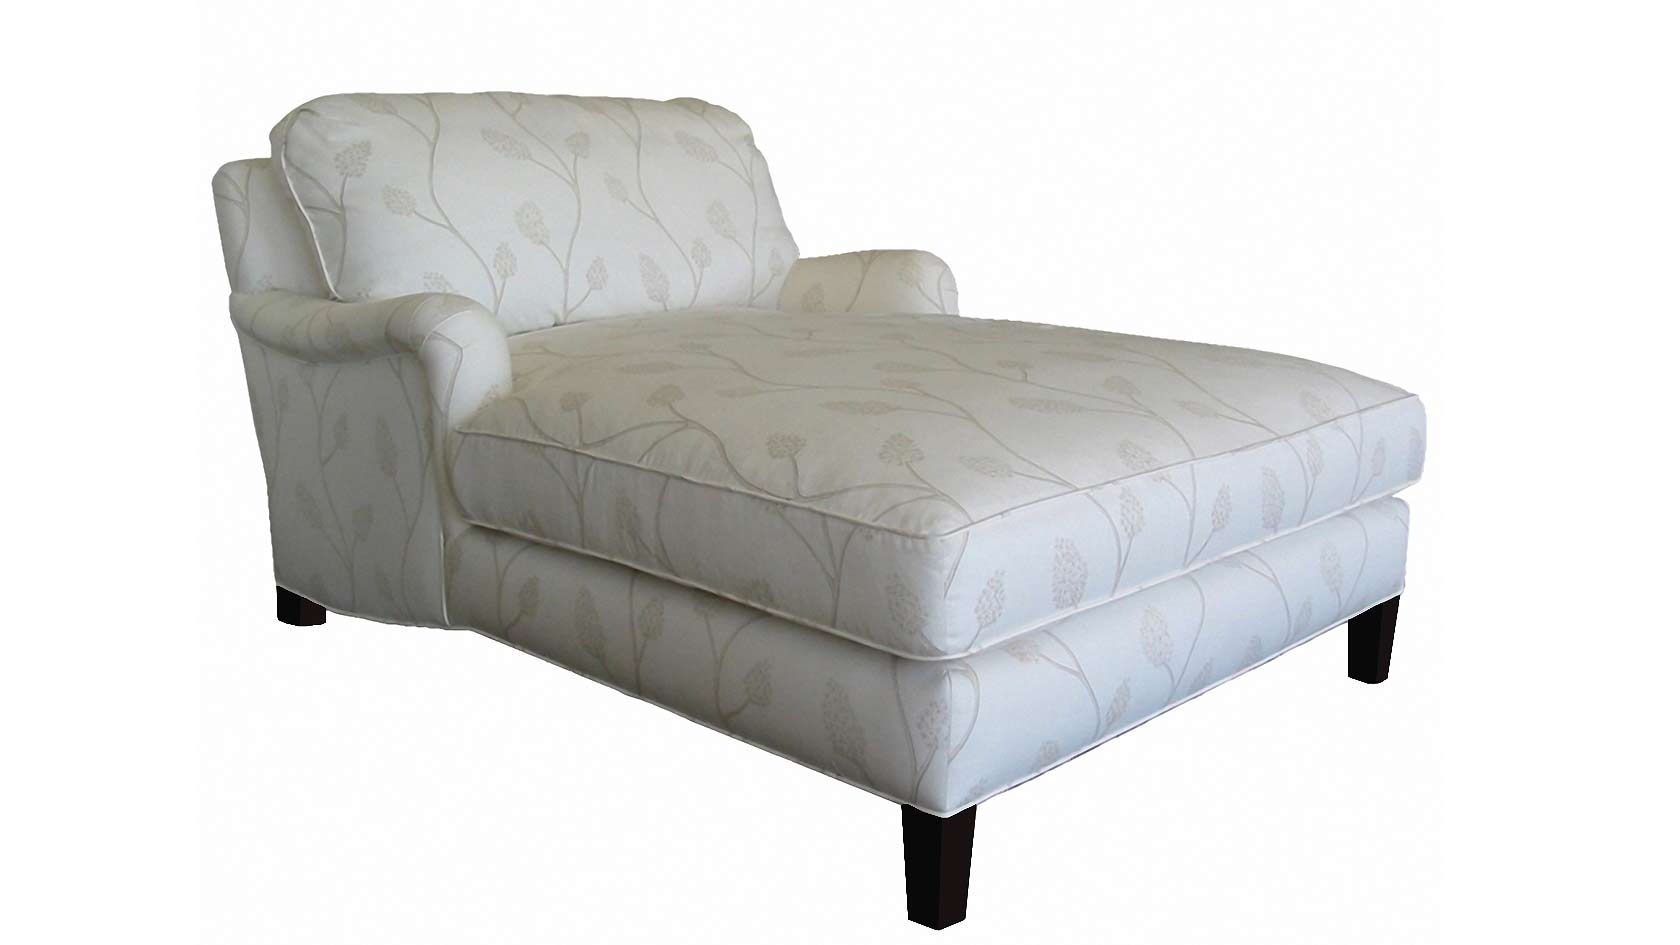 Trendy Plush Home Chelsea Double Chaise Lounge Pertaining To Double Chaise Lounges (View 13 of 15)